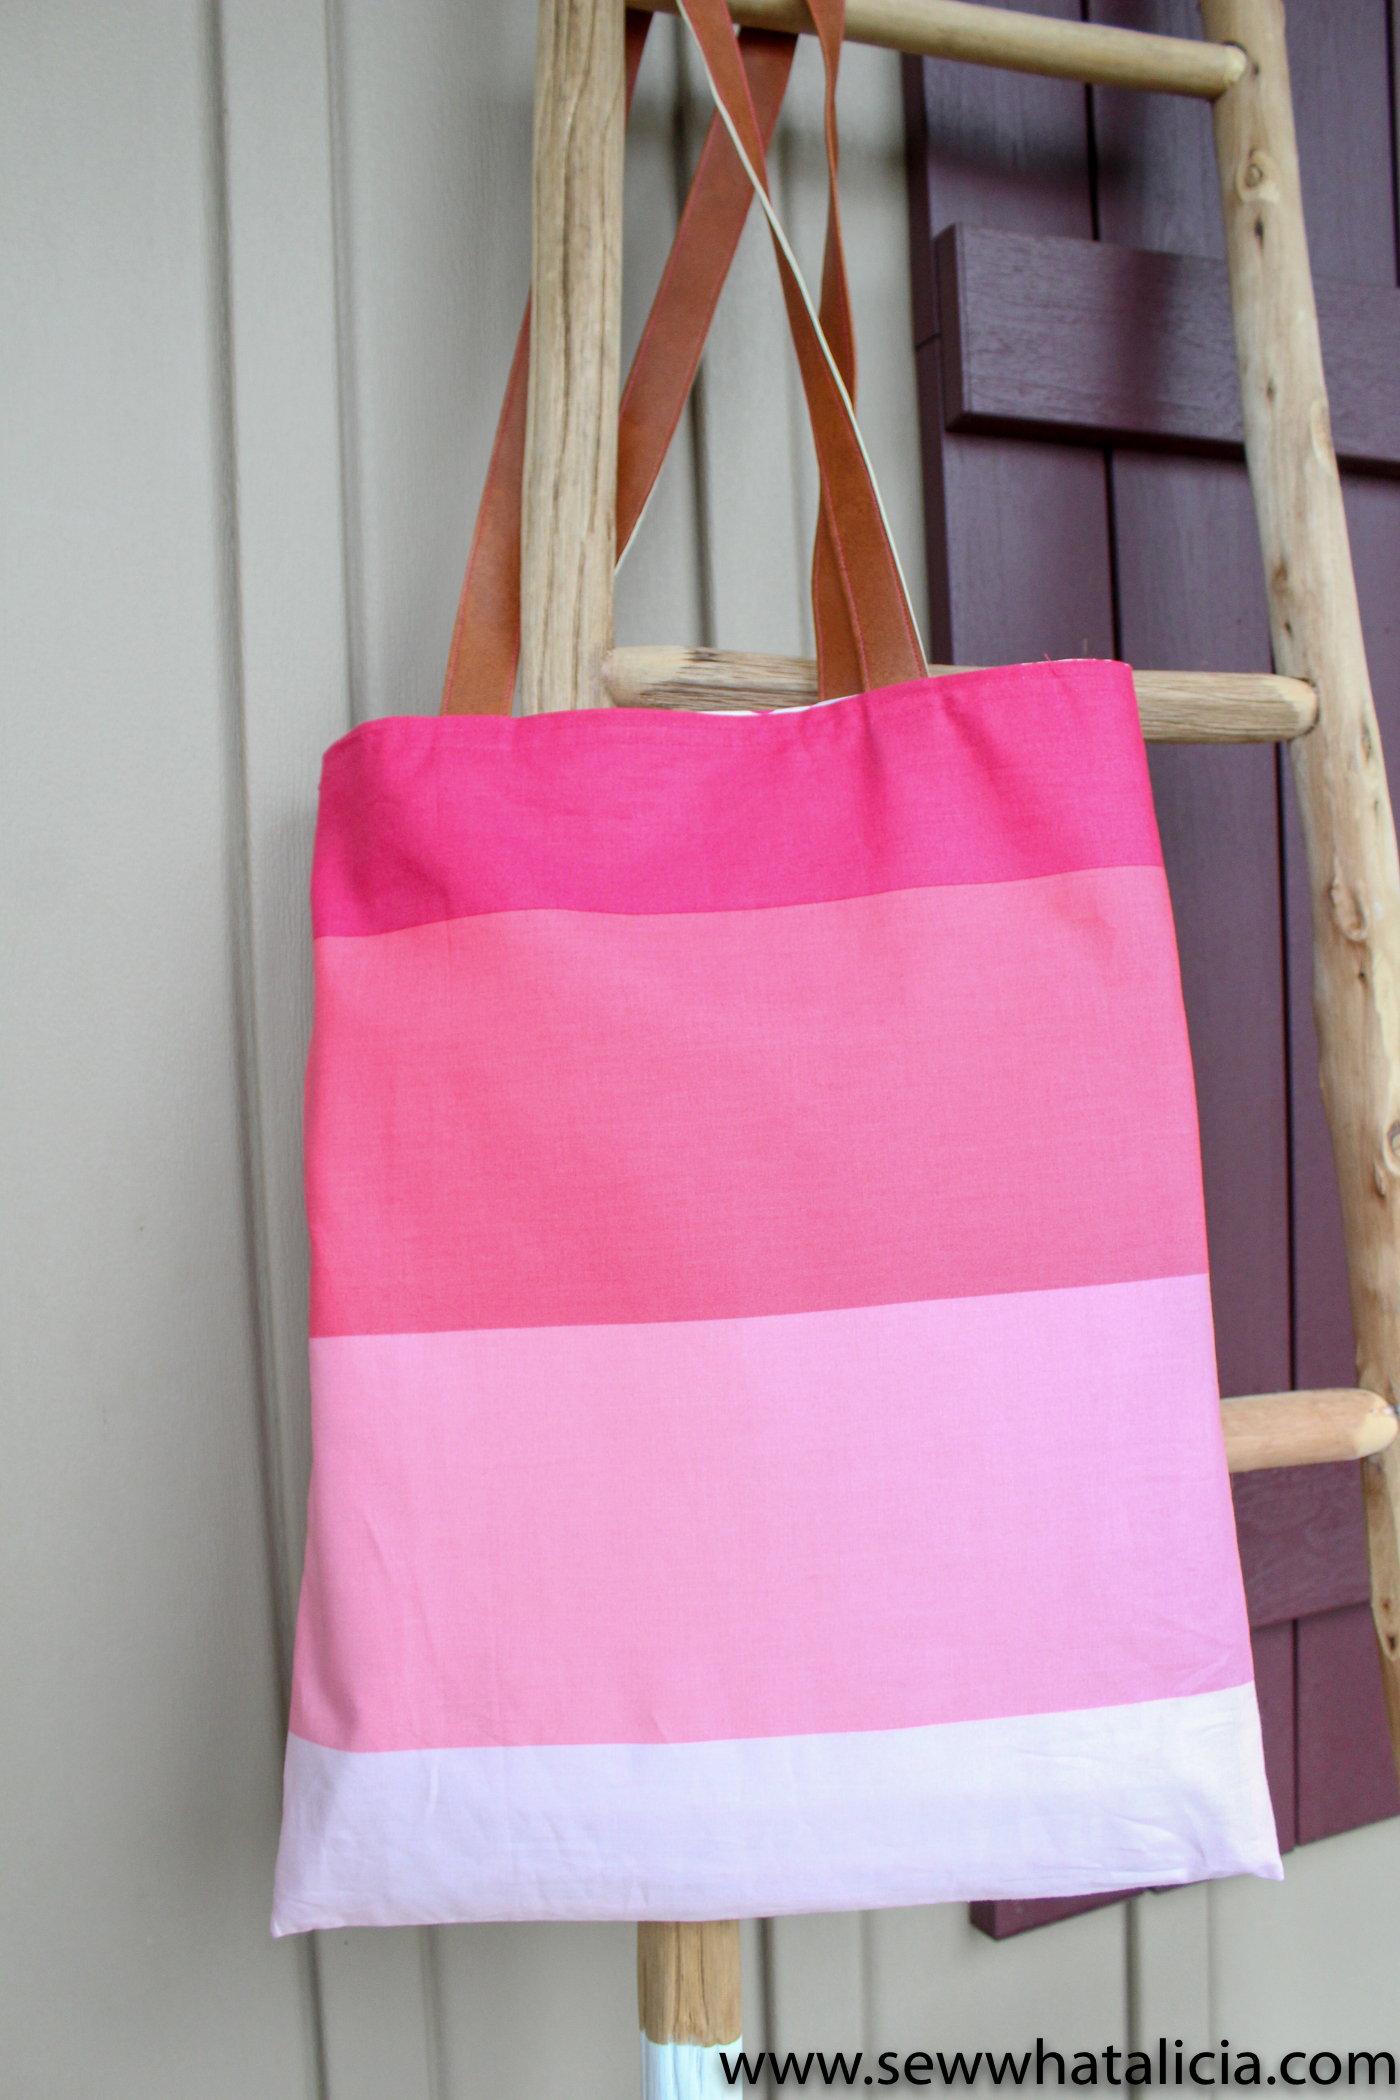 cc969618f7c0 How to Make a Tote Bag (in 15 Minutes) - Sew What, Alicia?